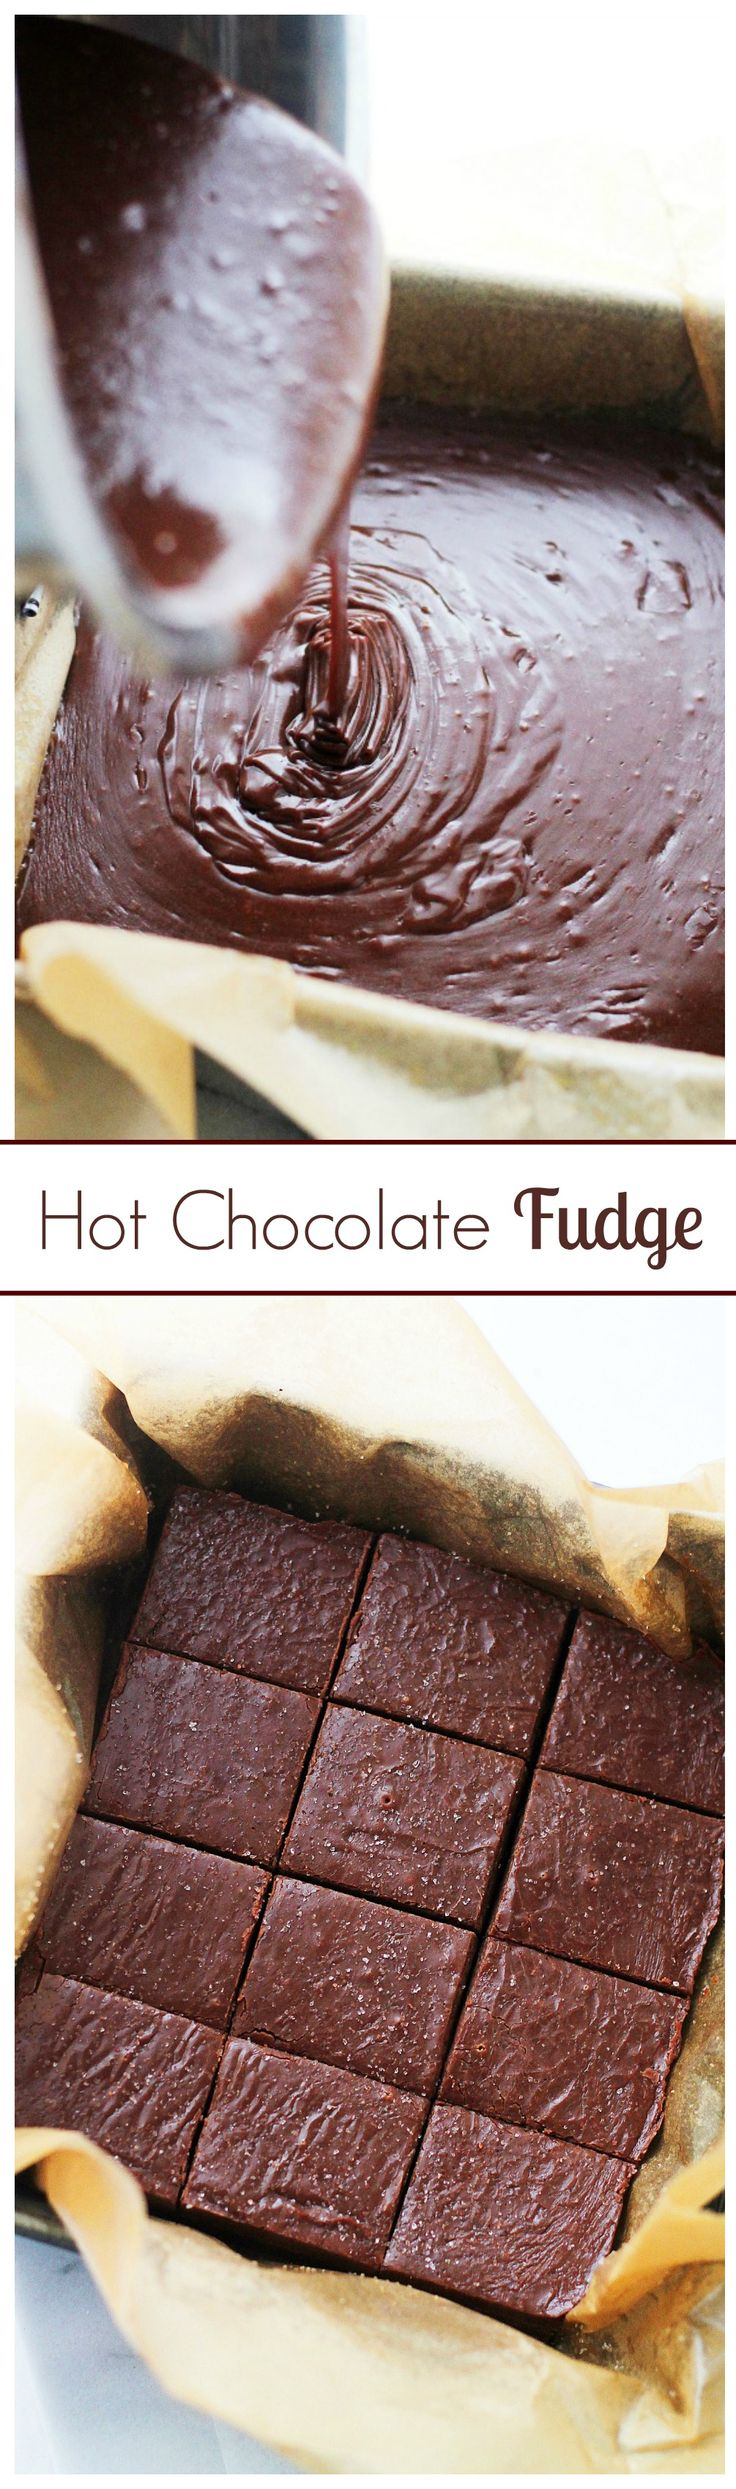 Hot Chocolate Fudge - With a little cayenne pepper, chili powder and lots of cinnamon, this fudge is spicy, delicious, chocolaty and EASY!